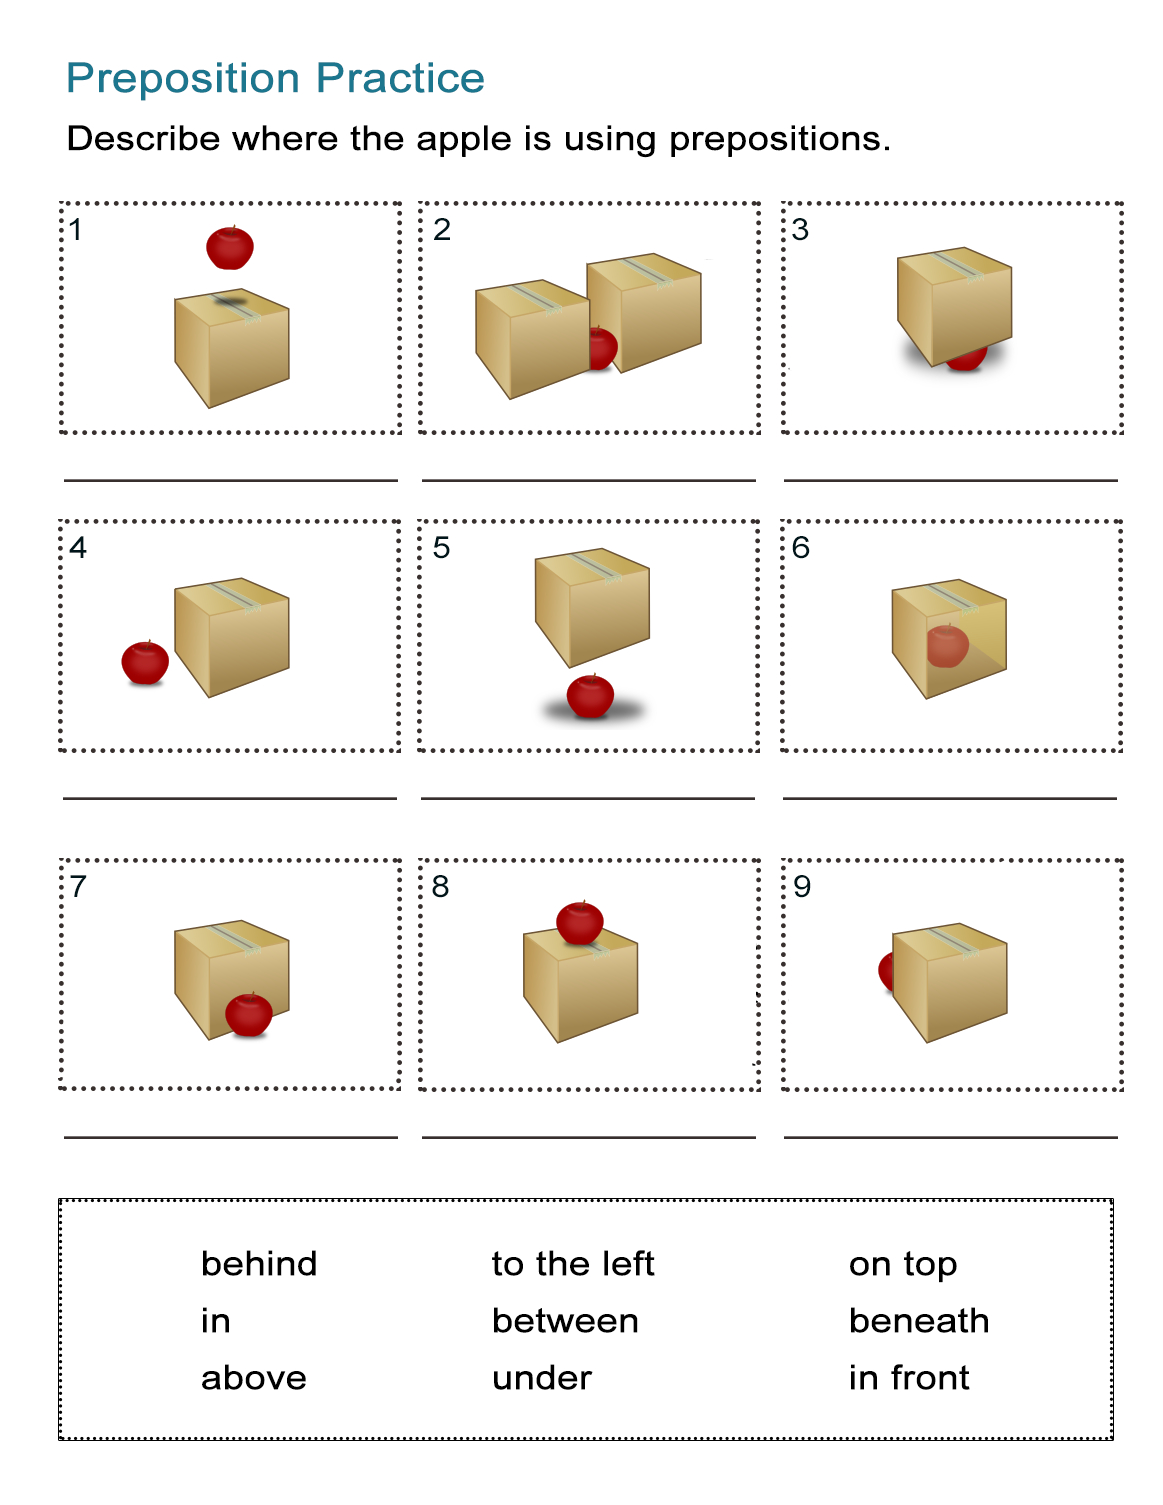 Prepositions Of Location Worksheet: Where Is The Apple? - All Esl | Free Printable Worksheets For Prepositions